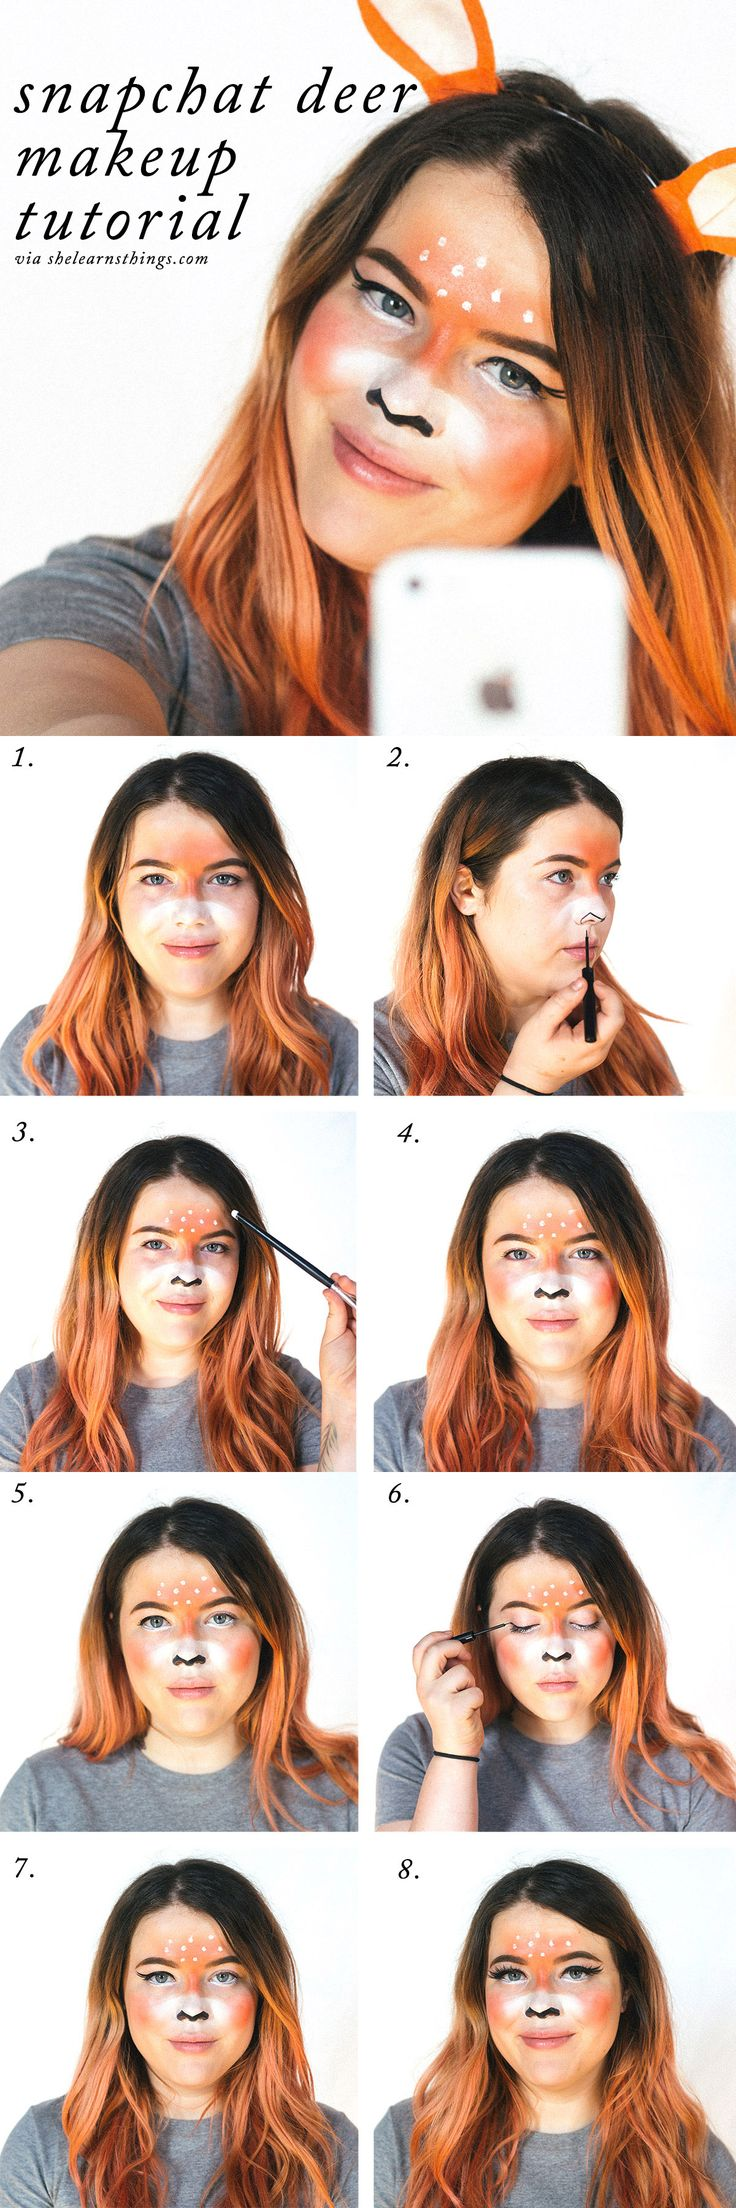 A quick and easy Snapchat deer makeup look! Fun for Halloween